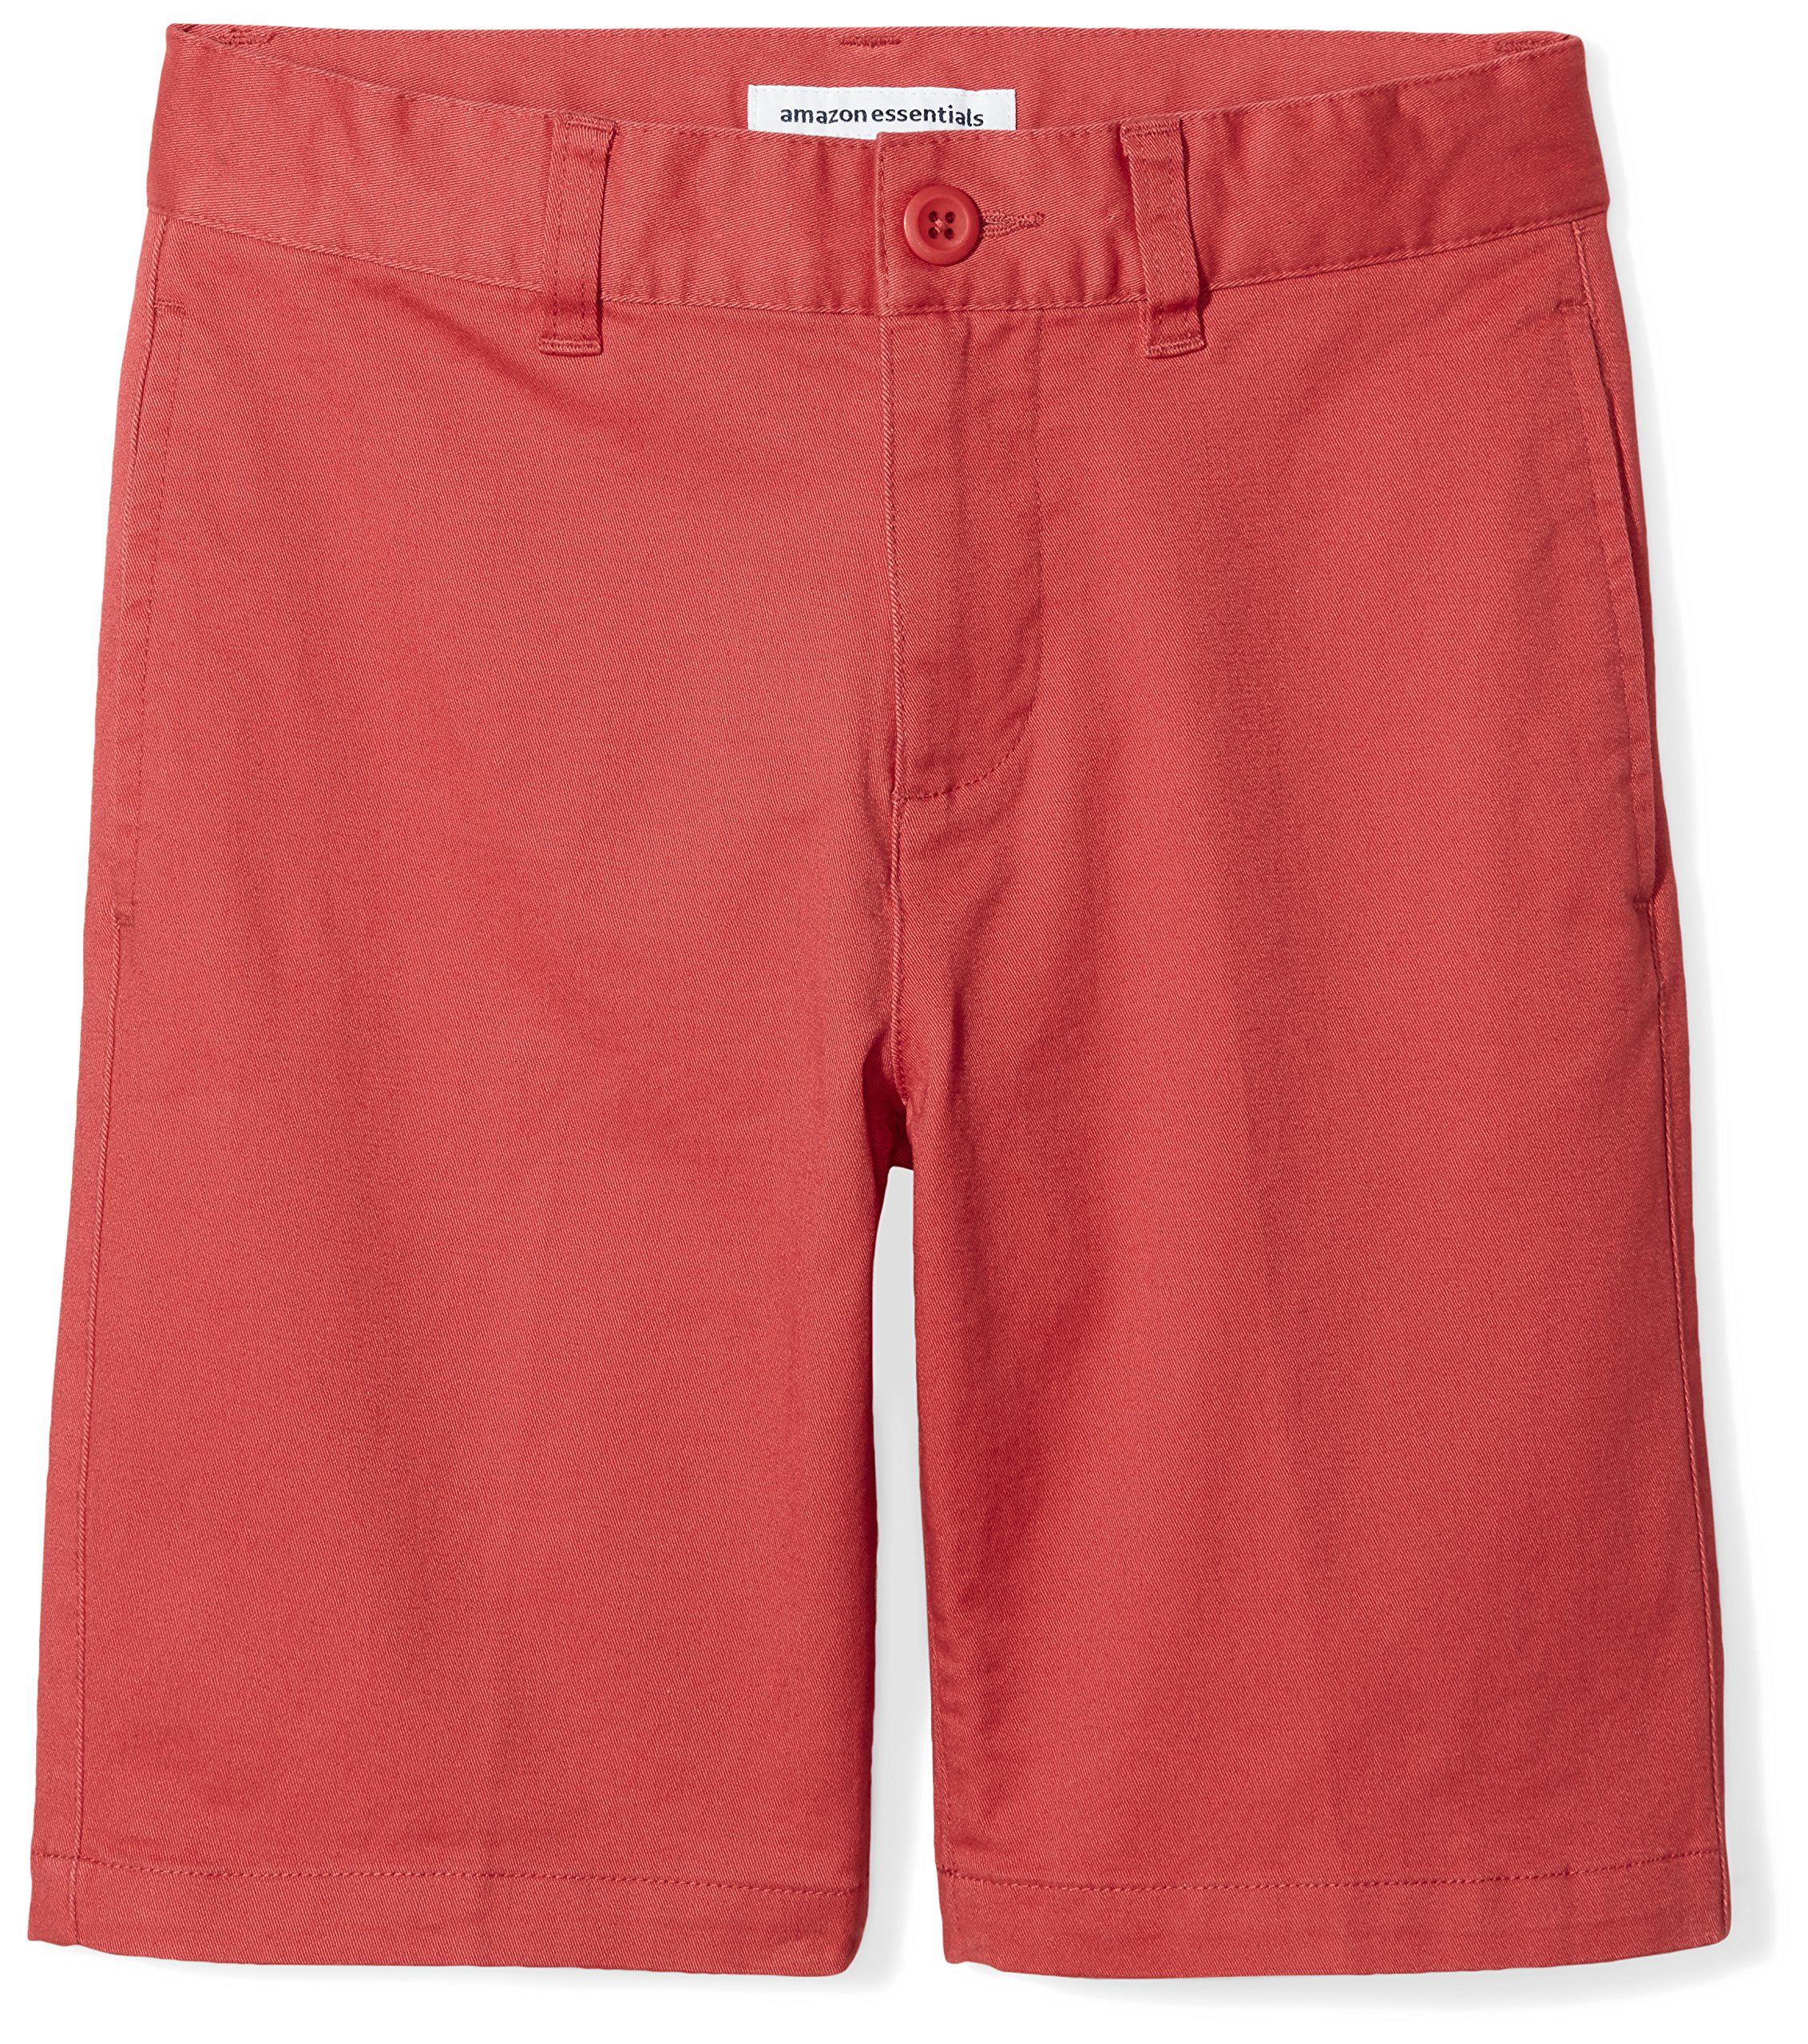 Amazon Essentials Boys' Flat Front Uniform Chino Short, Washed Red,10